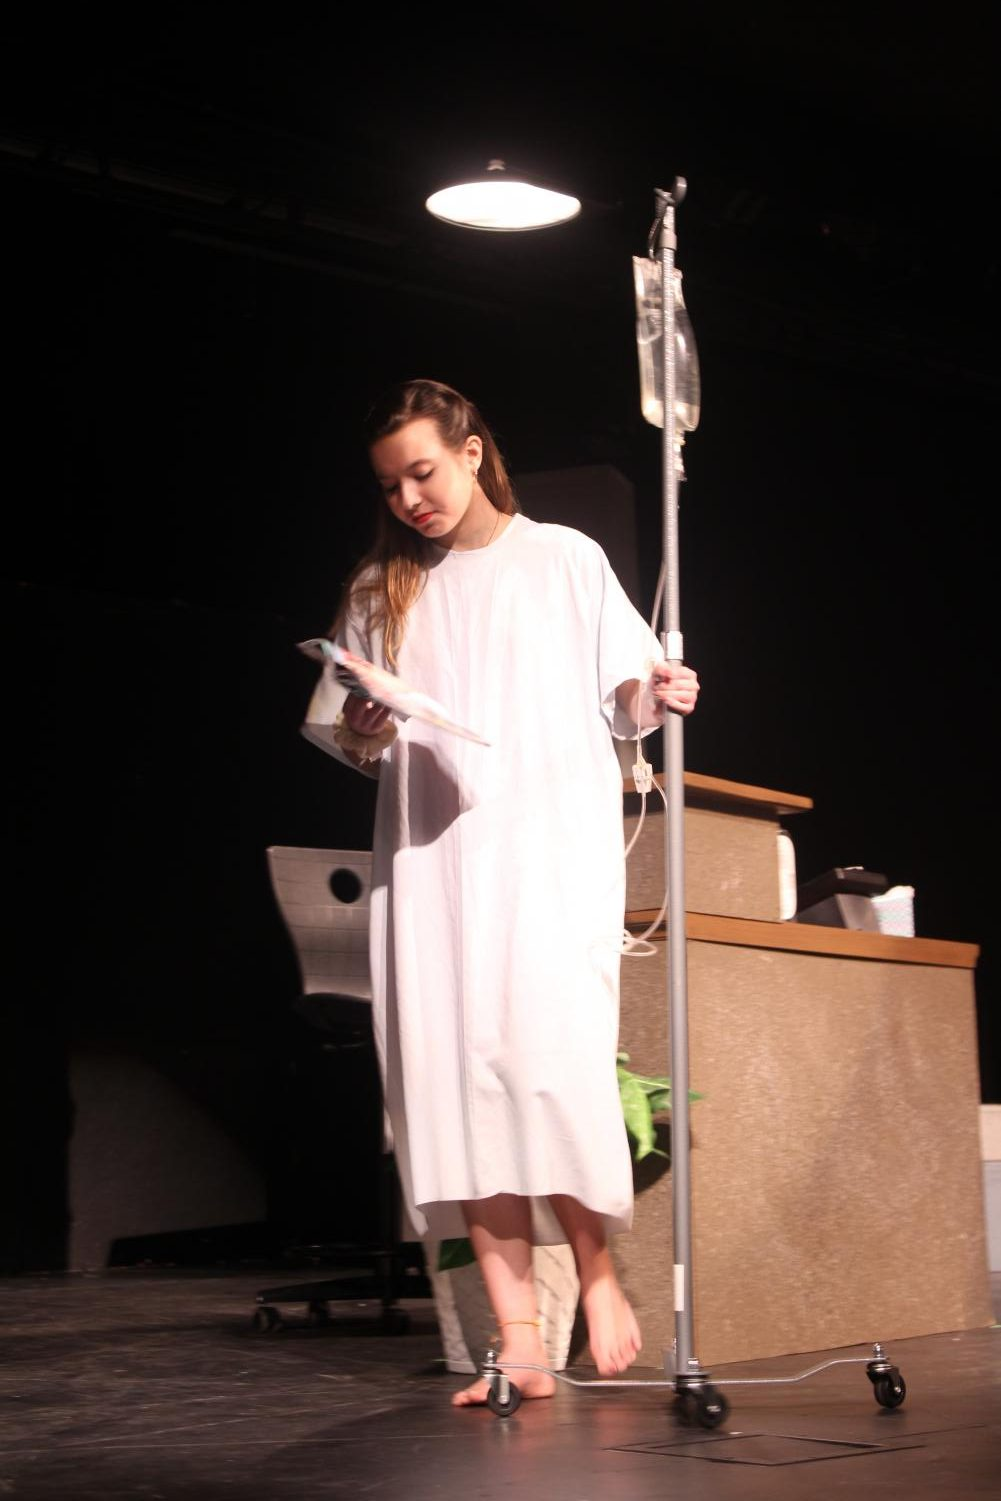 Isabella Barber '19 walks across stage in a hospital gown.